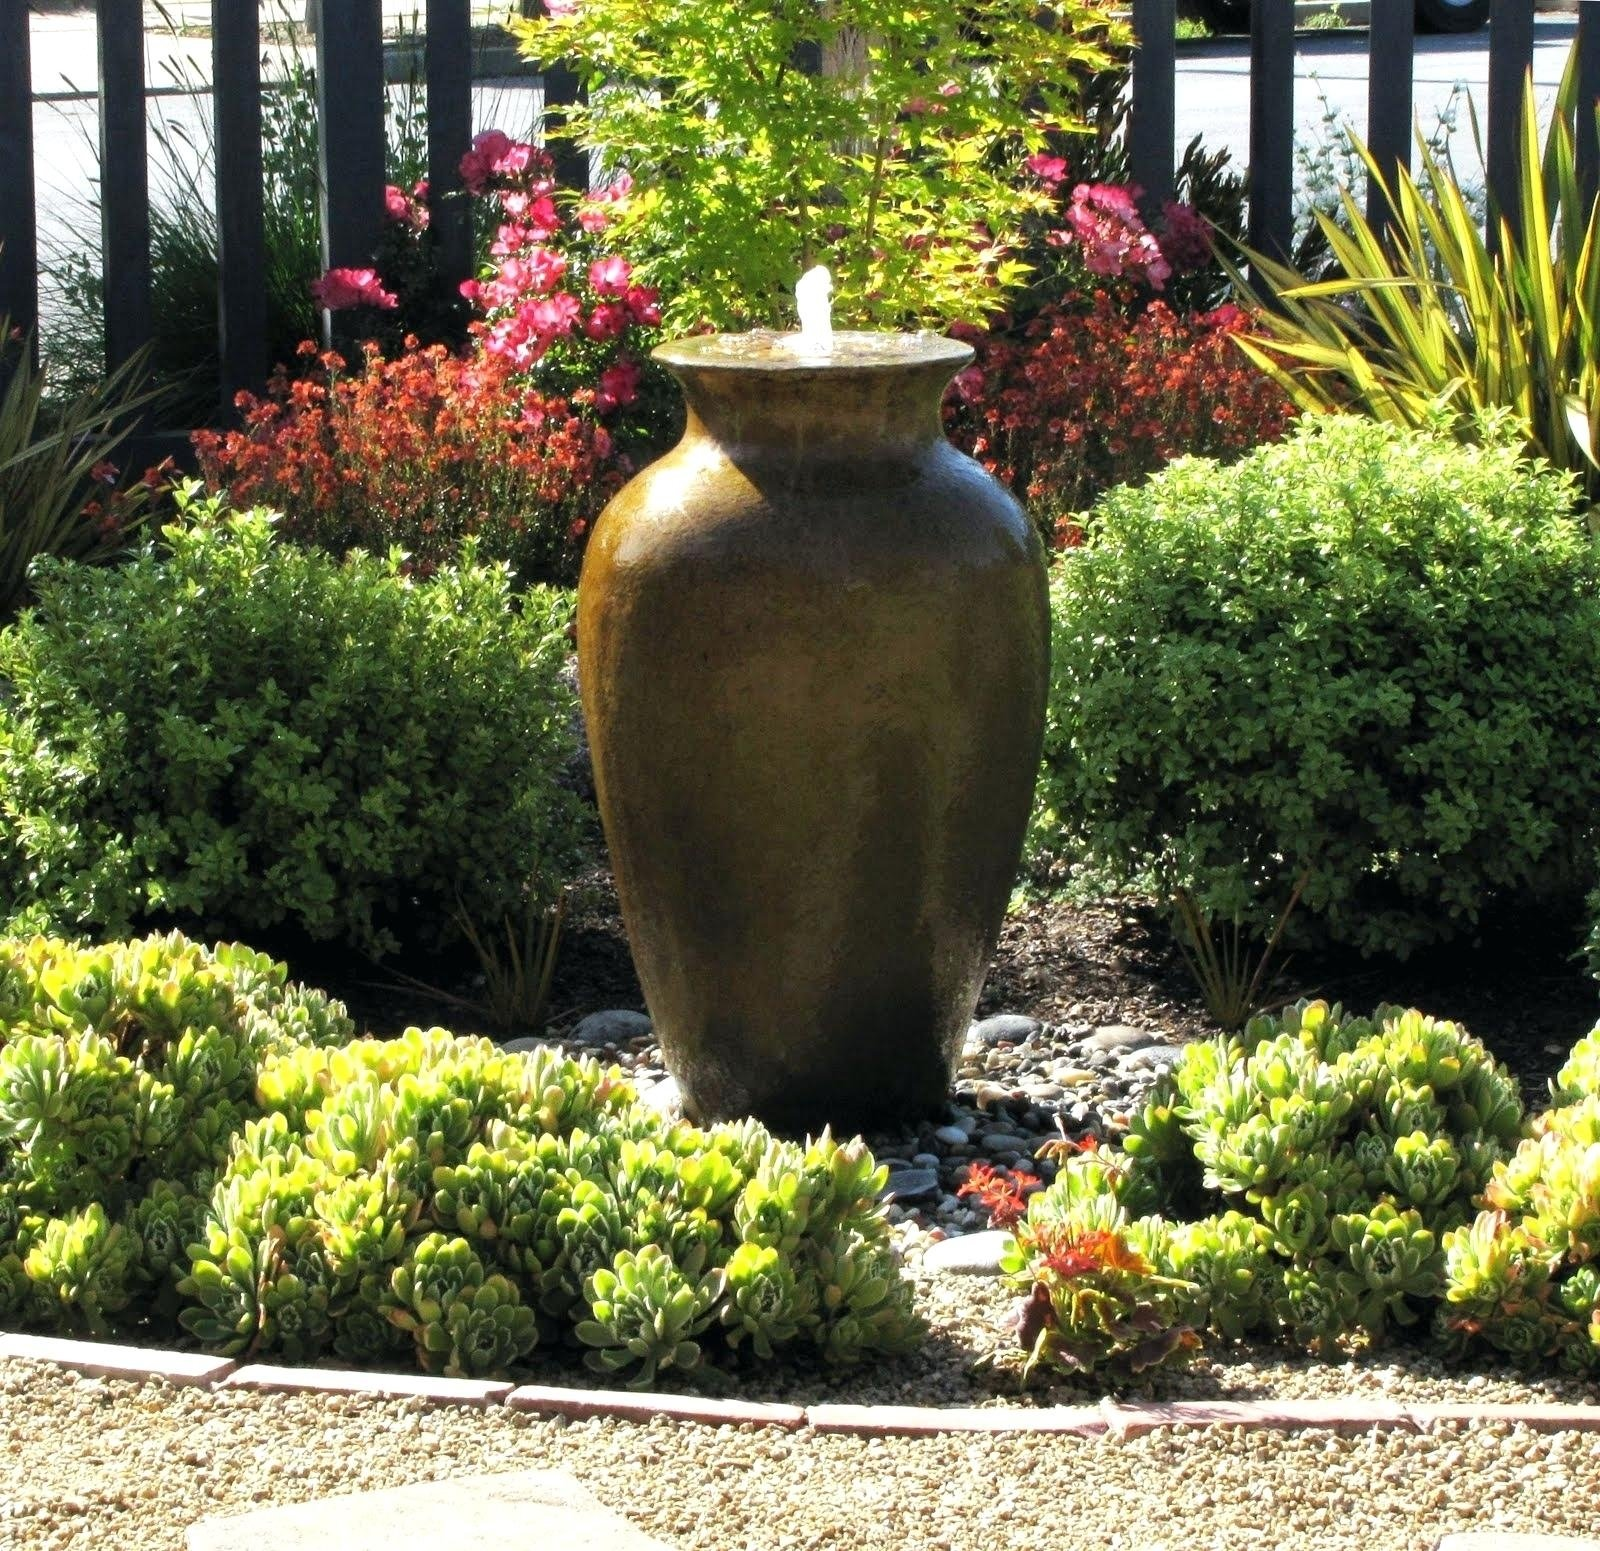 10 Perfect Water Feature Ideas For Small Gardens patio fountain ideas small front yard backyard water feature 2020